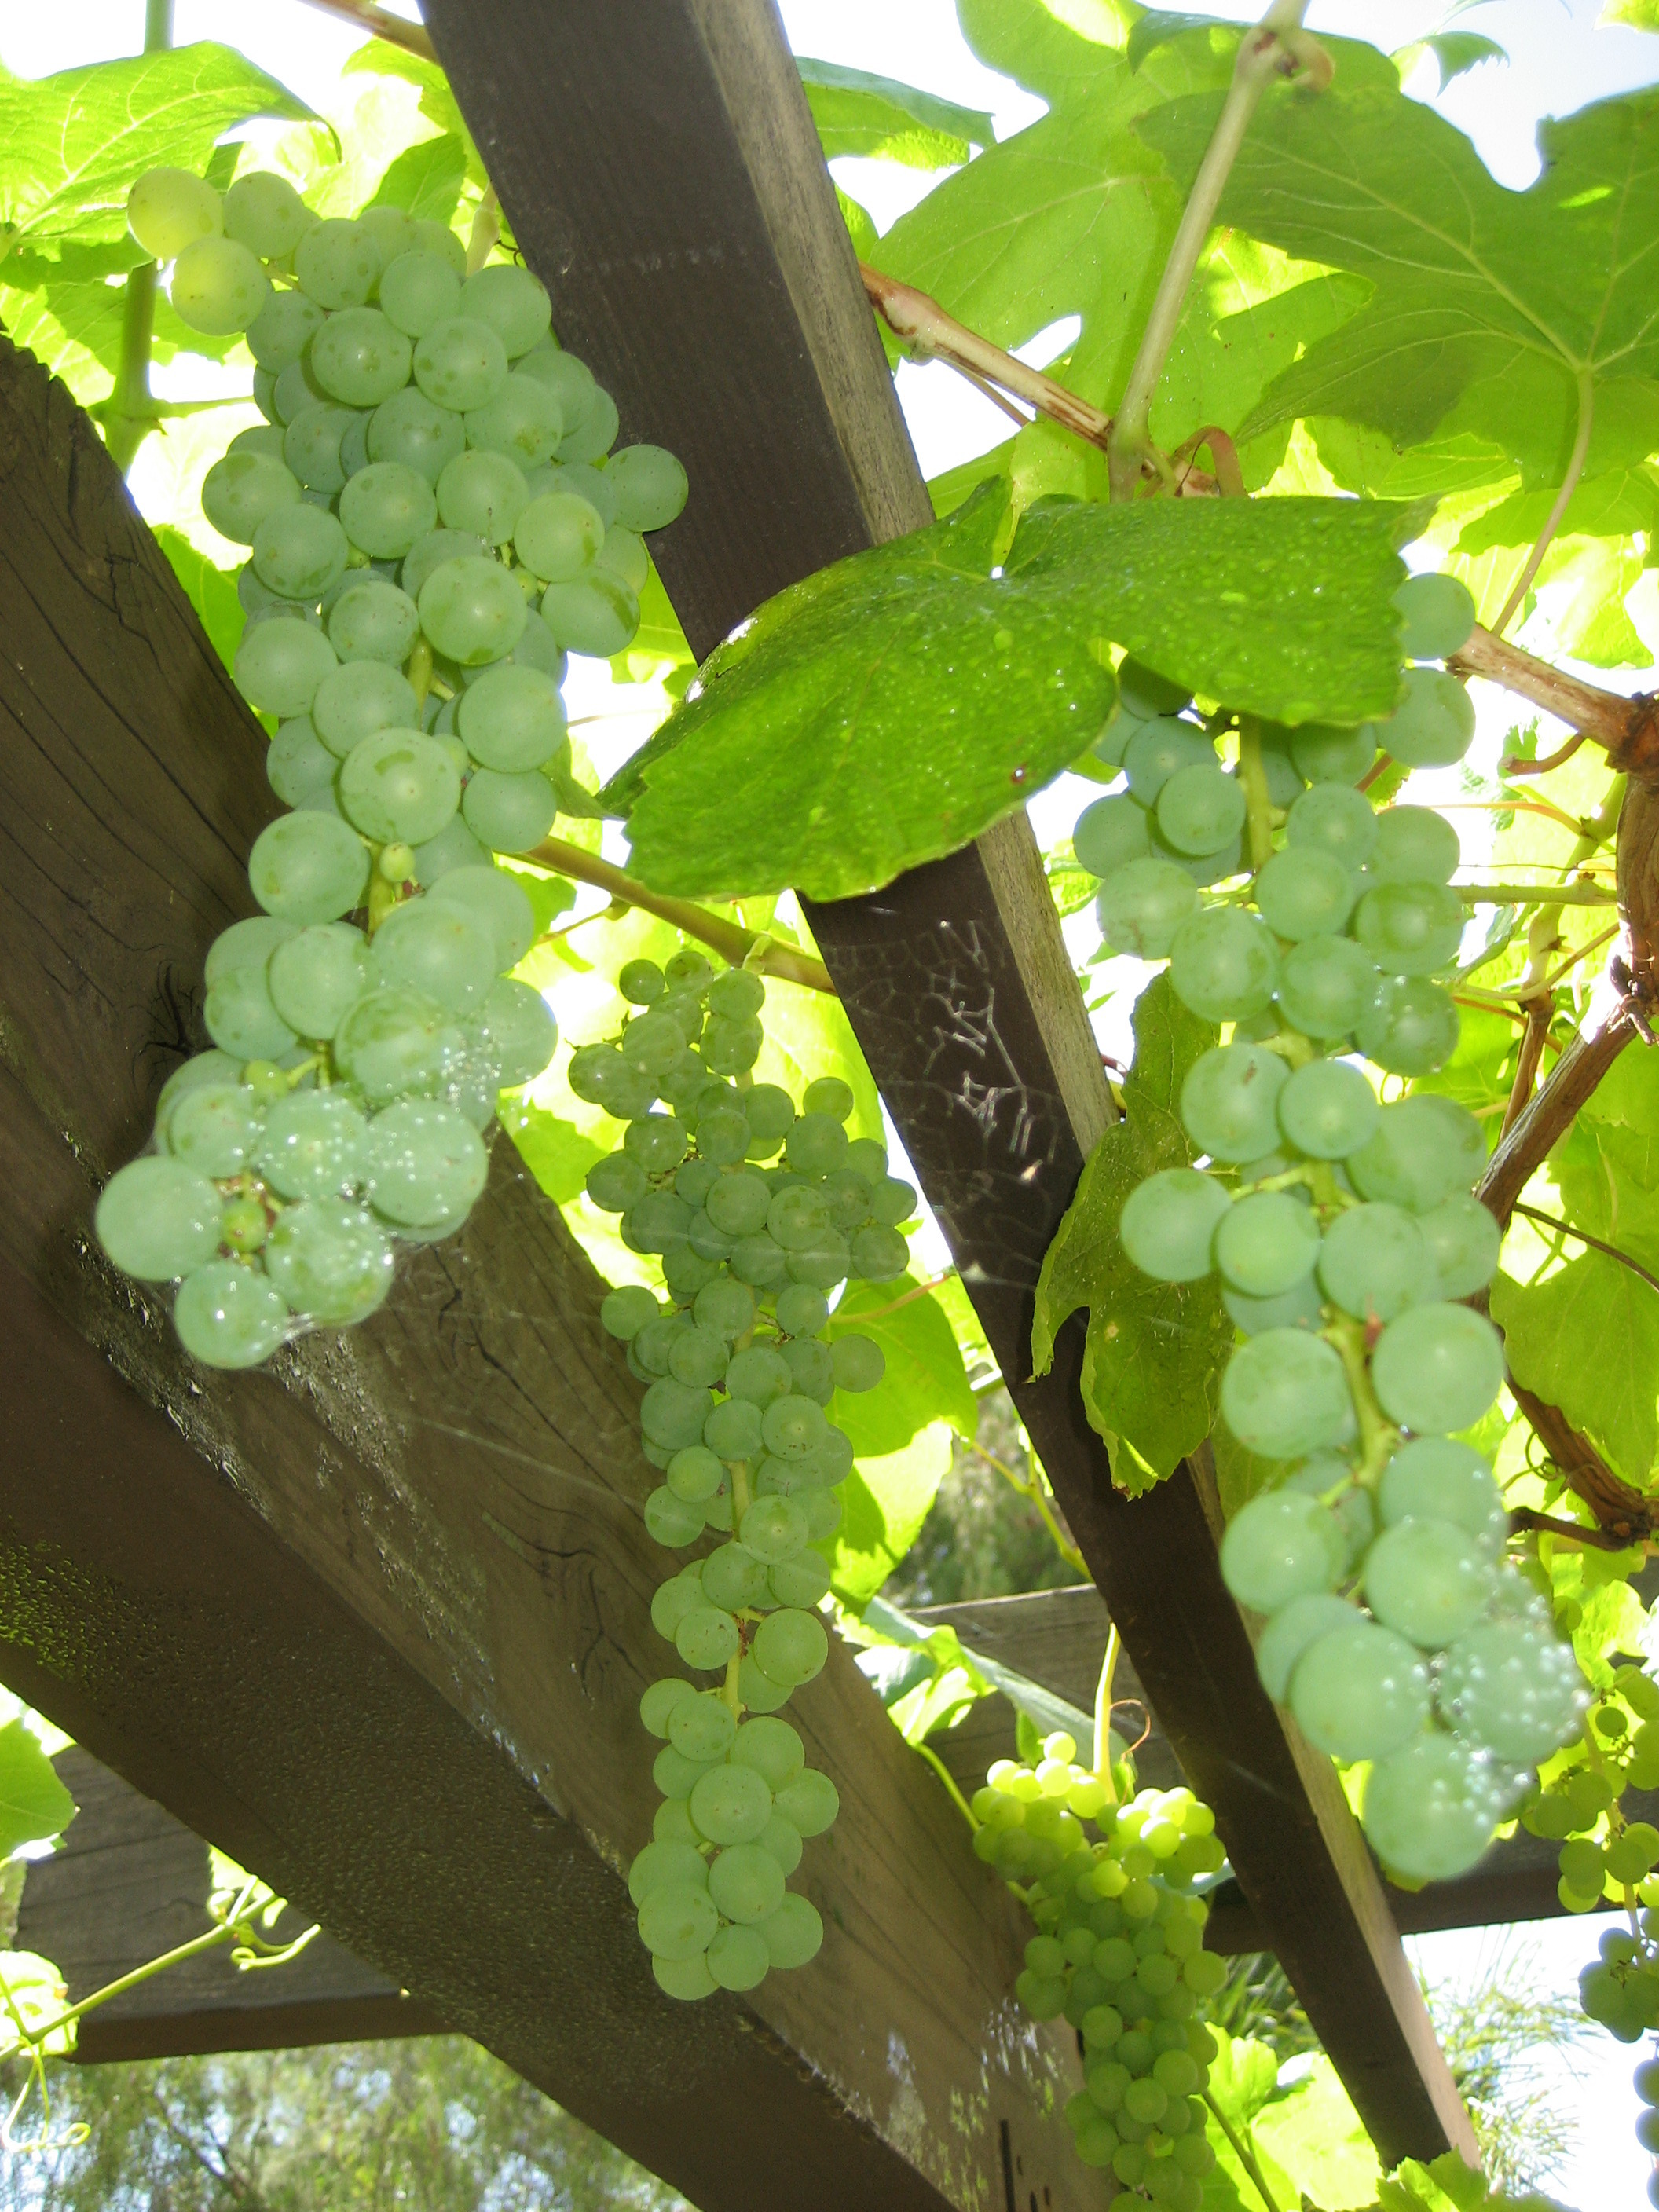 grapes of mathy tj nelson